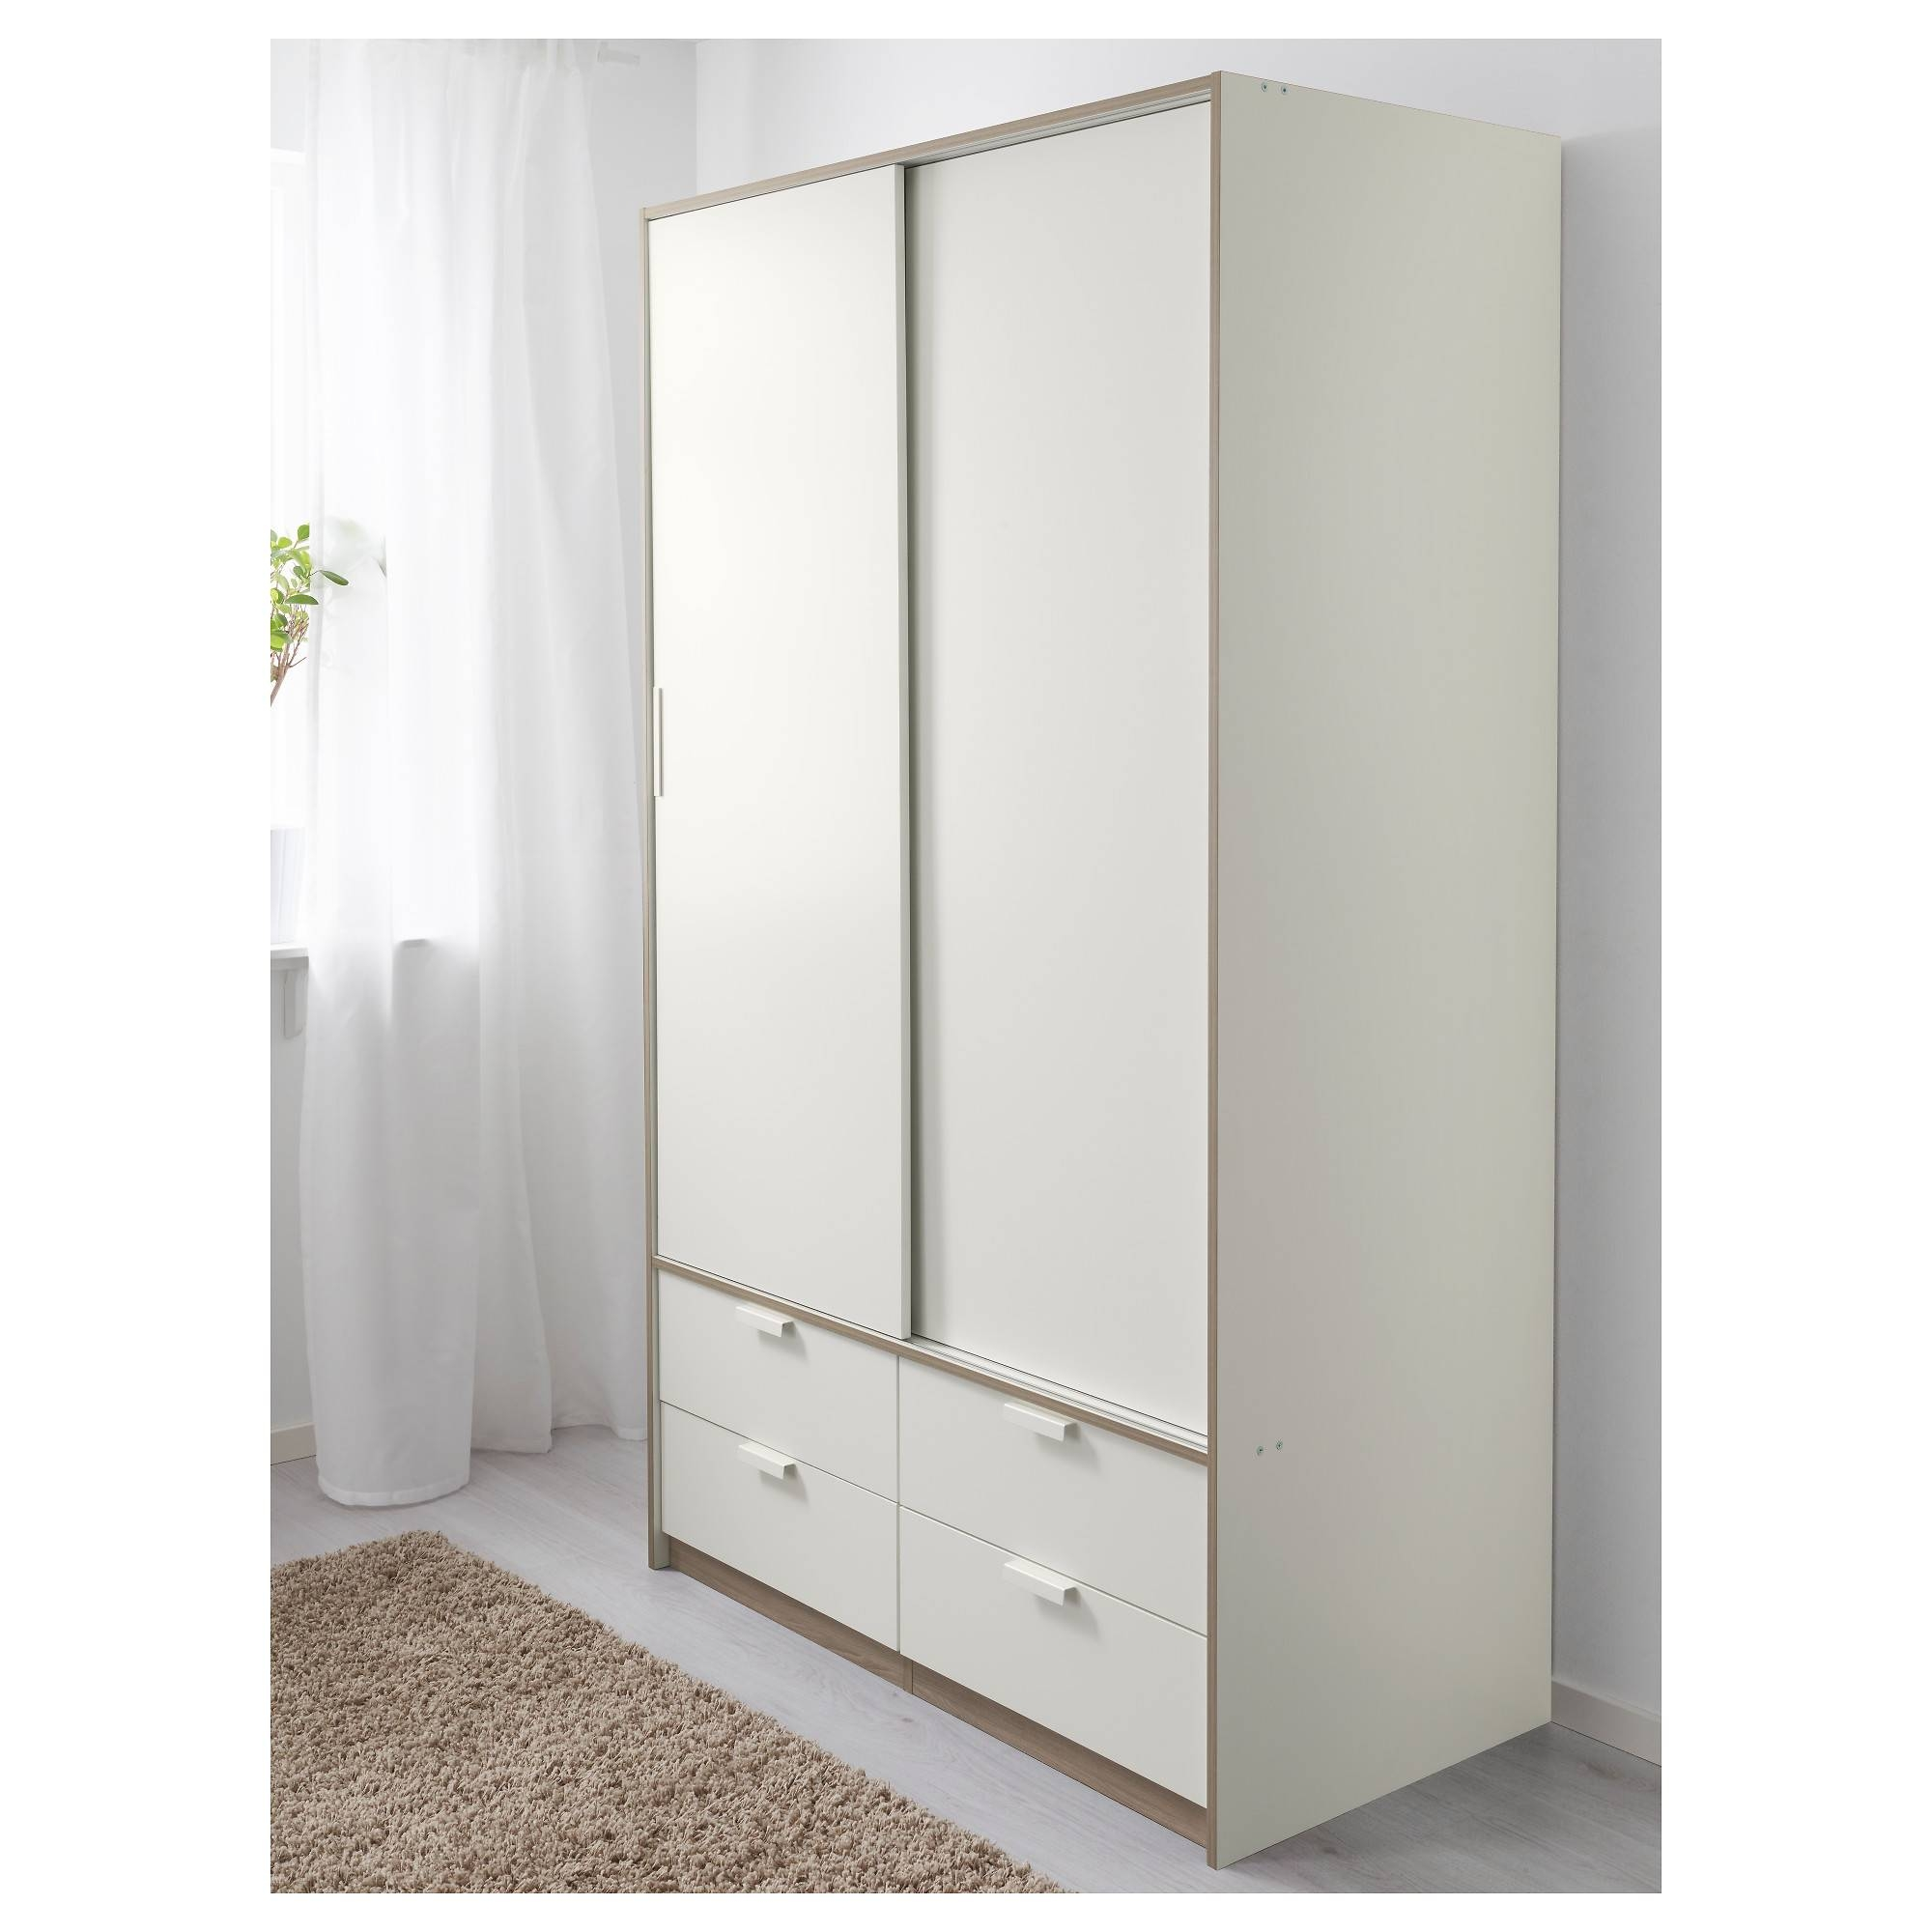 Trysil Wardrobe W Sliding Doors/4 Drawers White 118X61X202 Cm - Ikea intended for White Wardrobes With Drawers (Image 11 of 15)